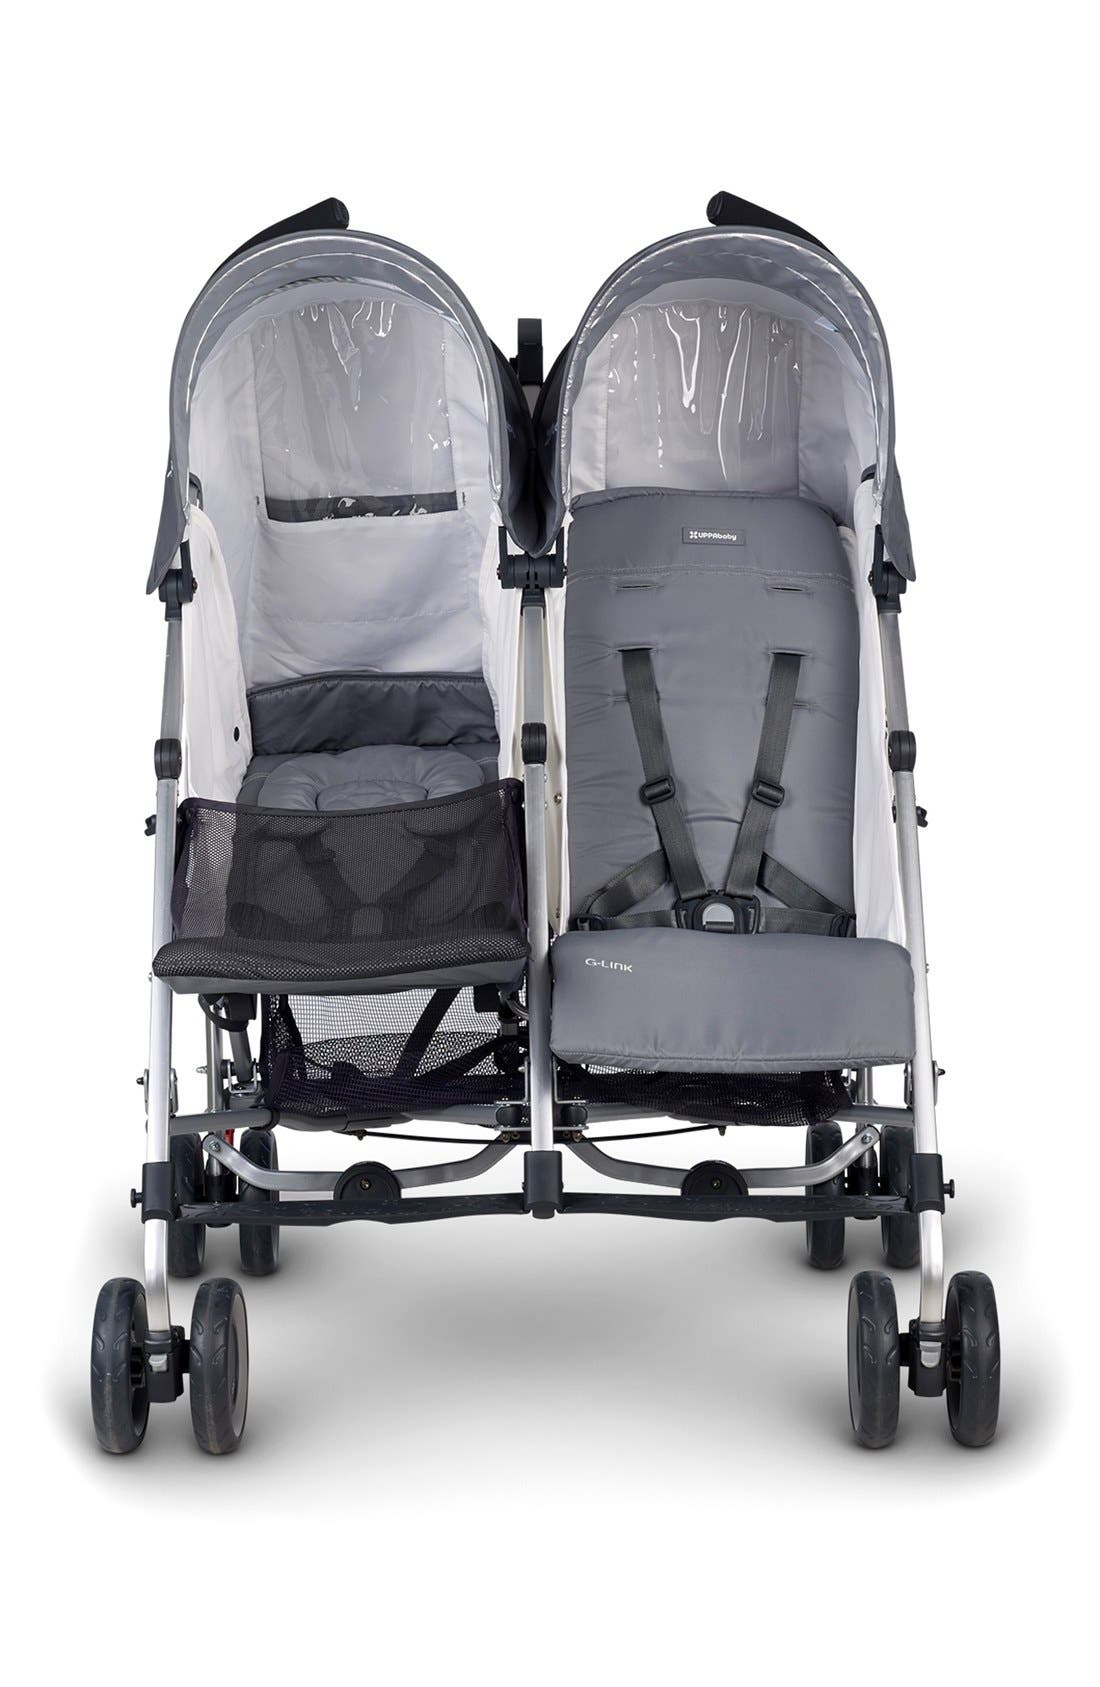 G-LINK Pascal Aluminum Frame Reclining Side by Side Umbrella Stroller,                             Alternate thumbnail 2, color,                             020